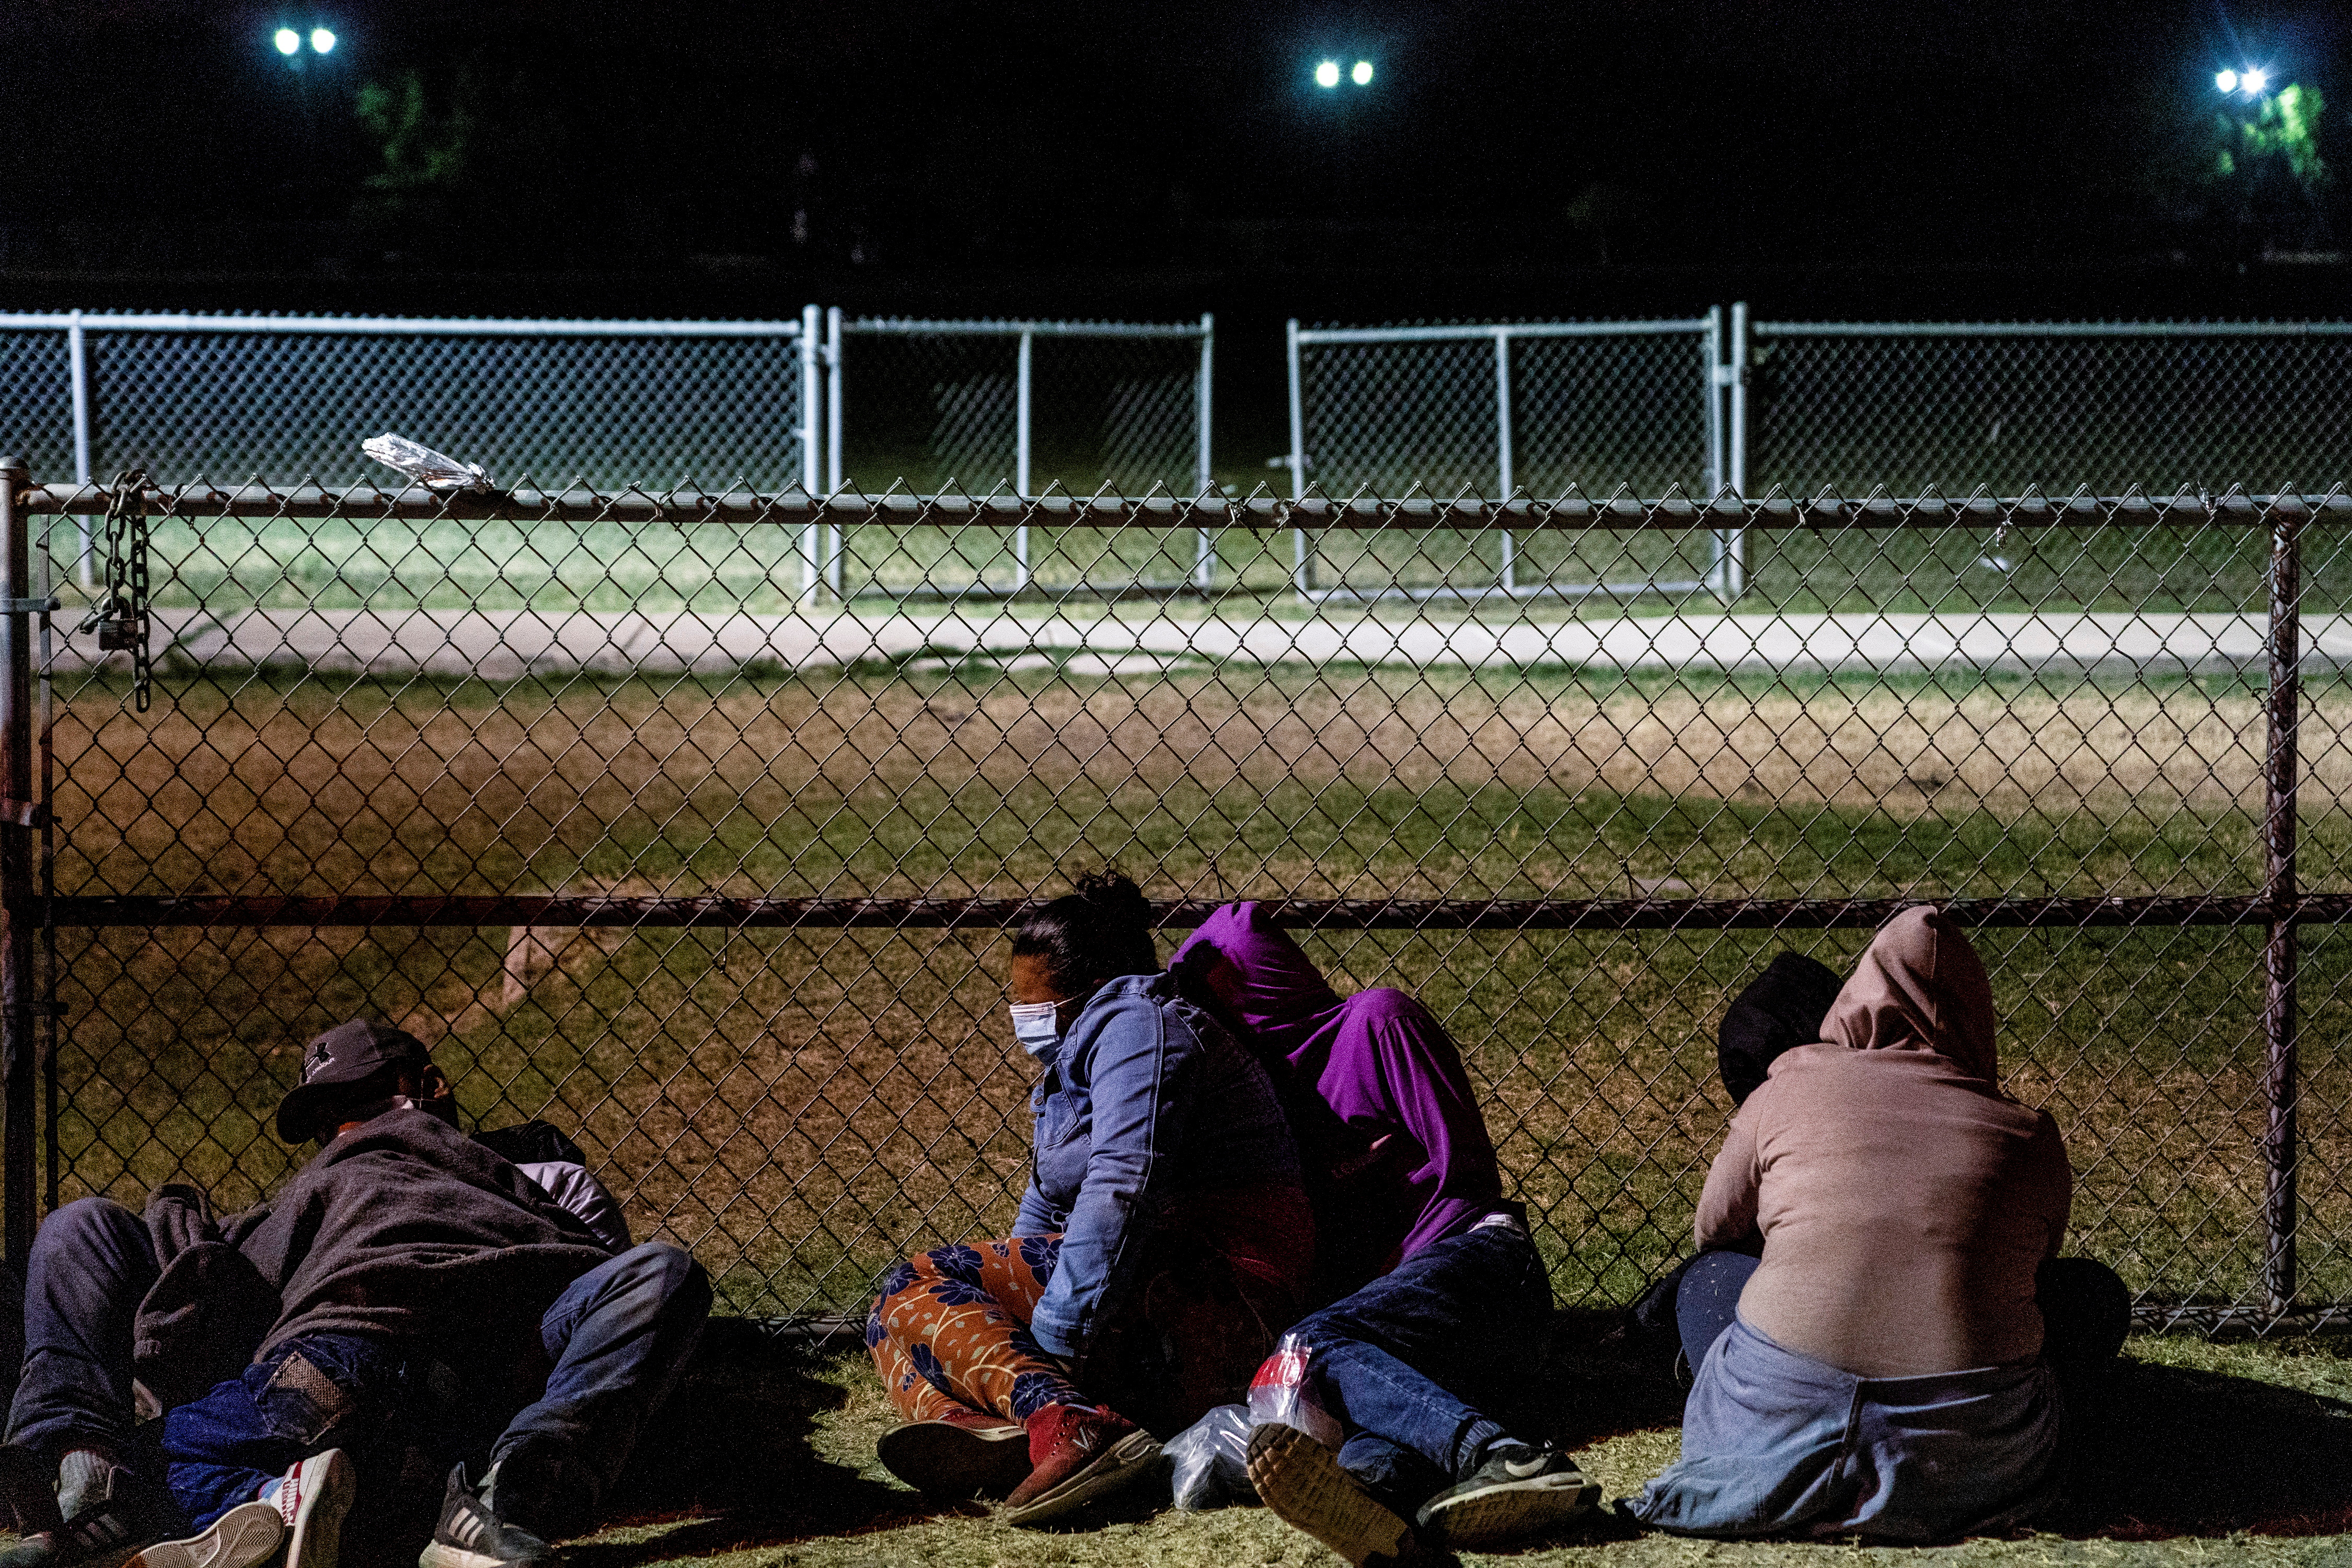 Asylum-seeking migrants' families rest on the ground while waiting to be transported by the U.S. Border Patrols after crossing the Rio Grande River into the United States from Mexico in La Joya, Texas, U.S., April 7, 2021. REUTERS/Go Nakamura/File Photo